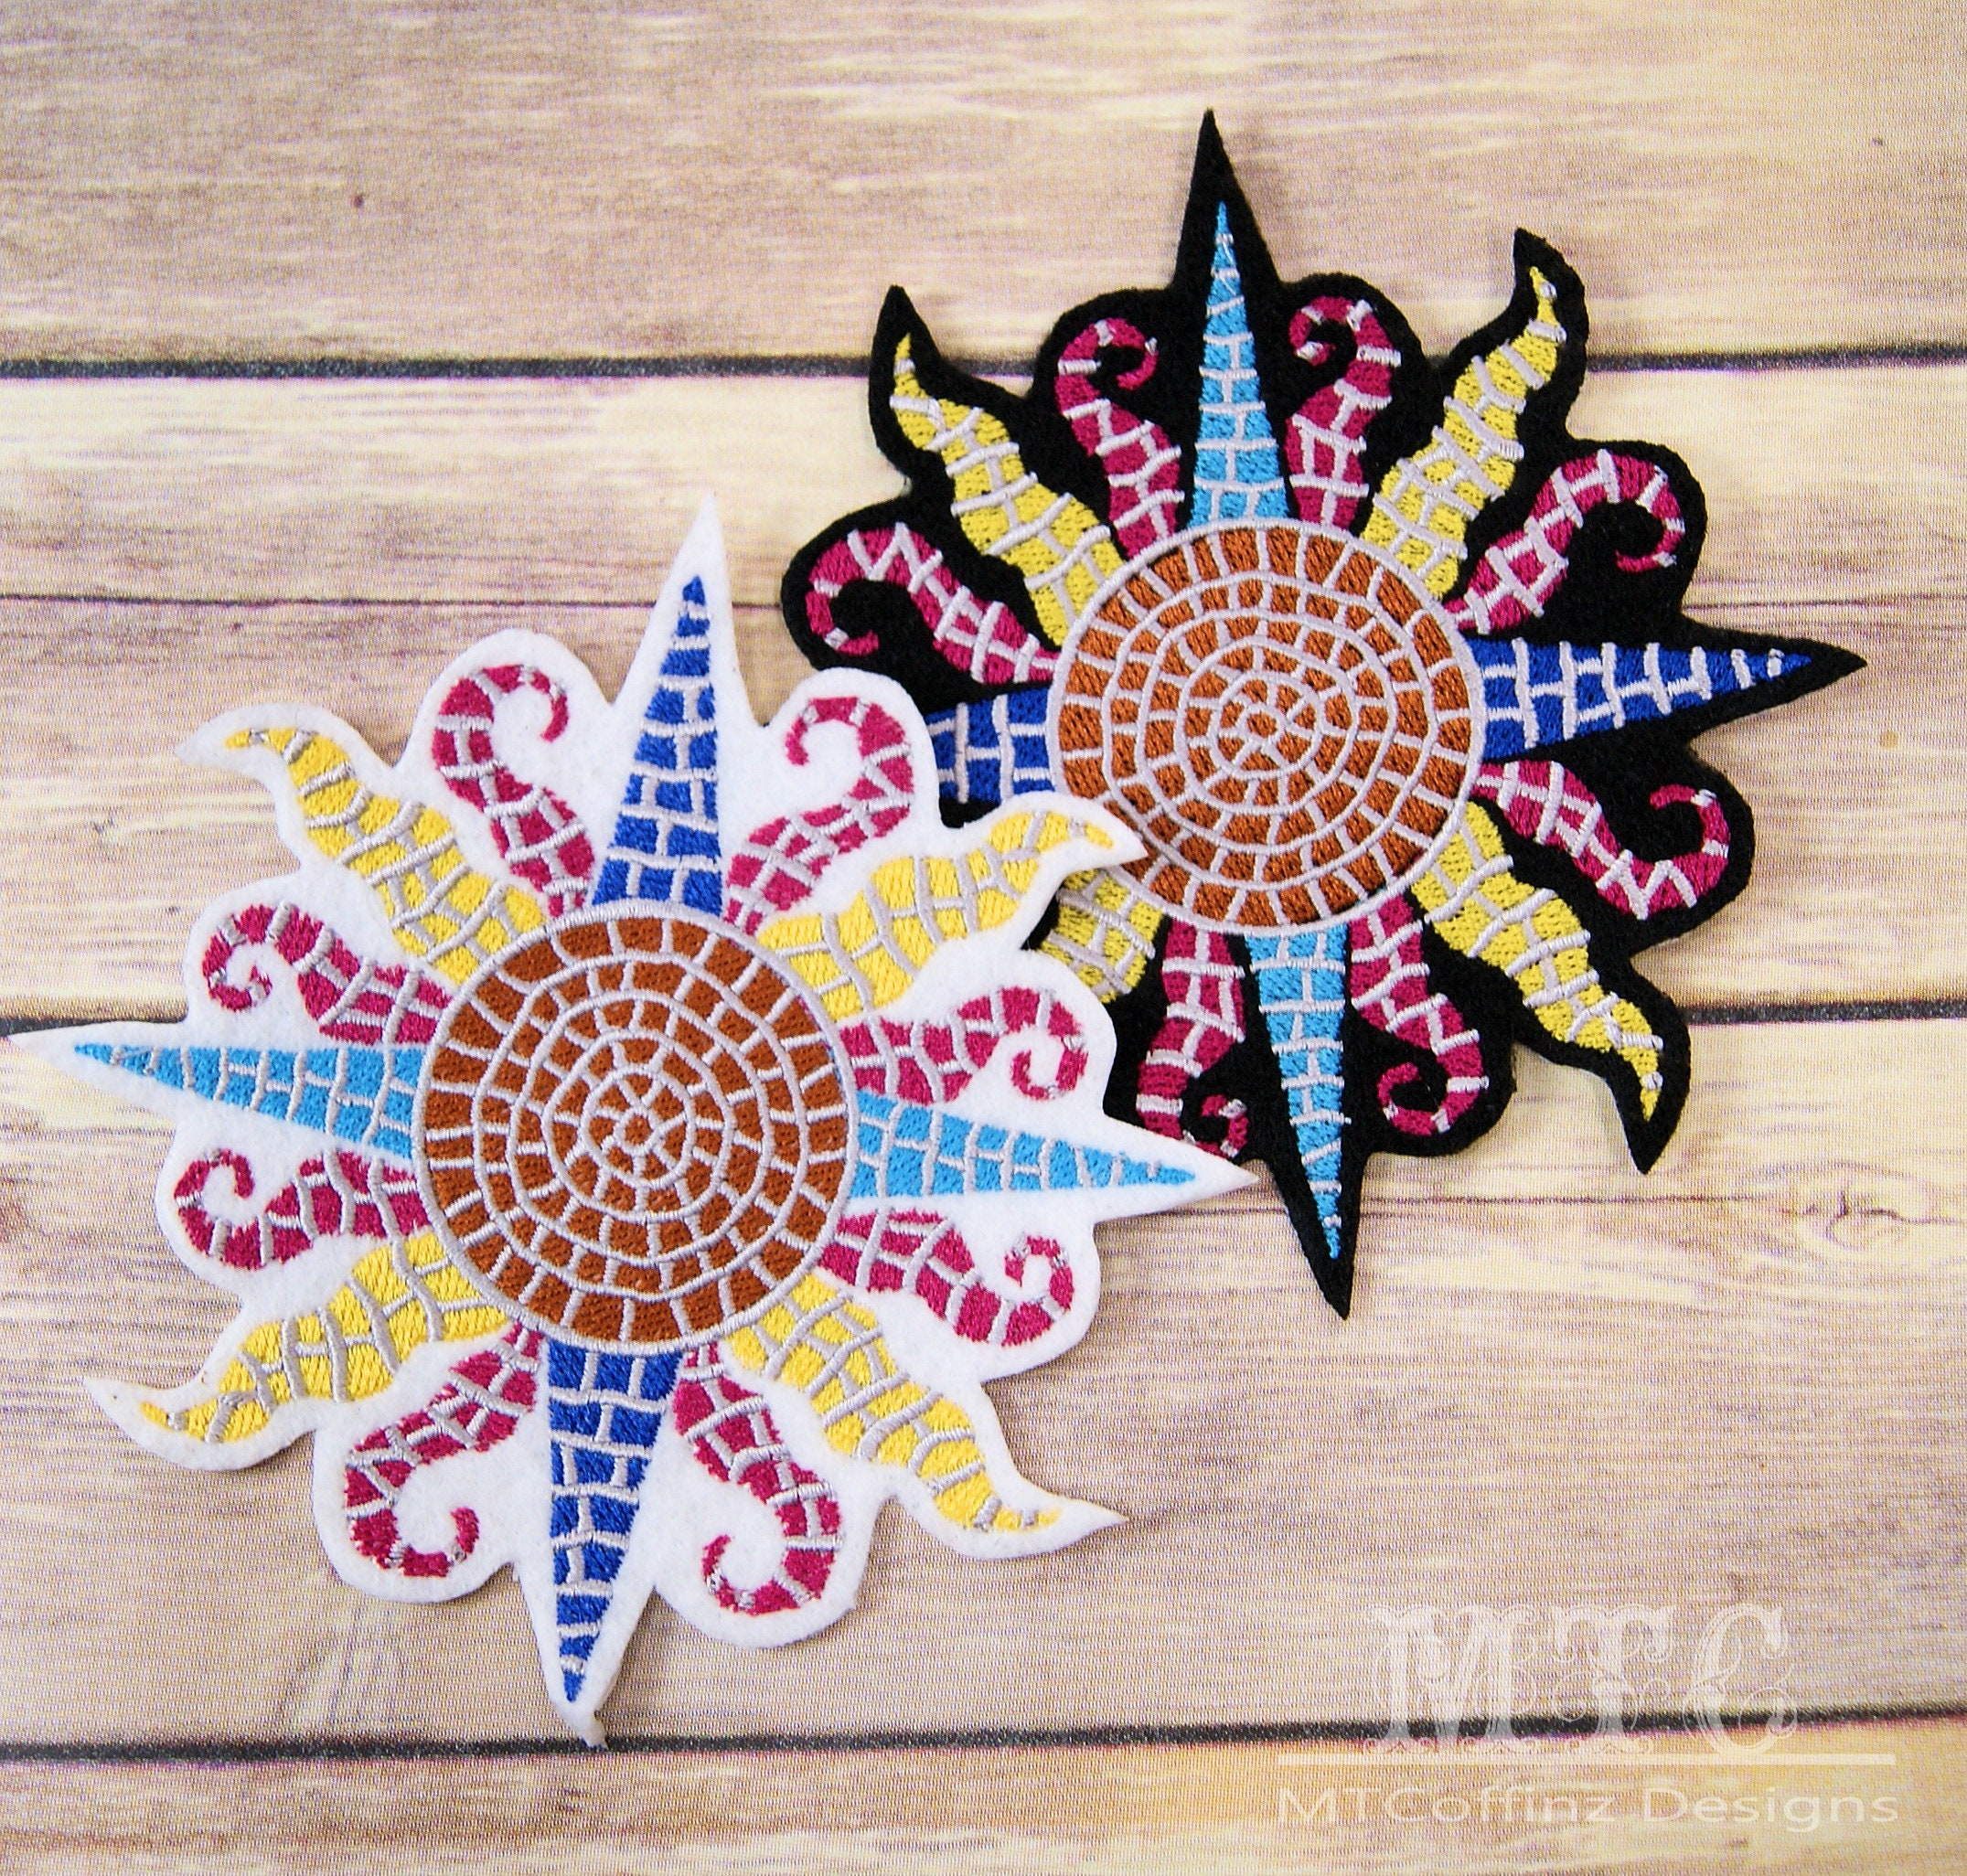 d6fa706b9d9 Mosaic Tiles Summer Sun Iron On Embroidery Patch MTCoffinz - Choose Size /  Color